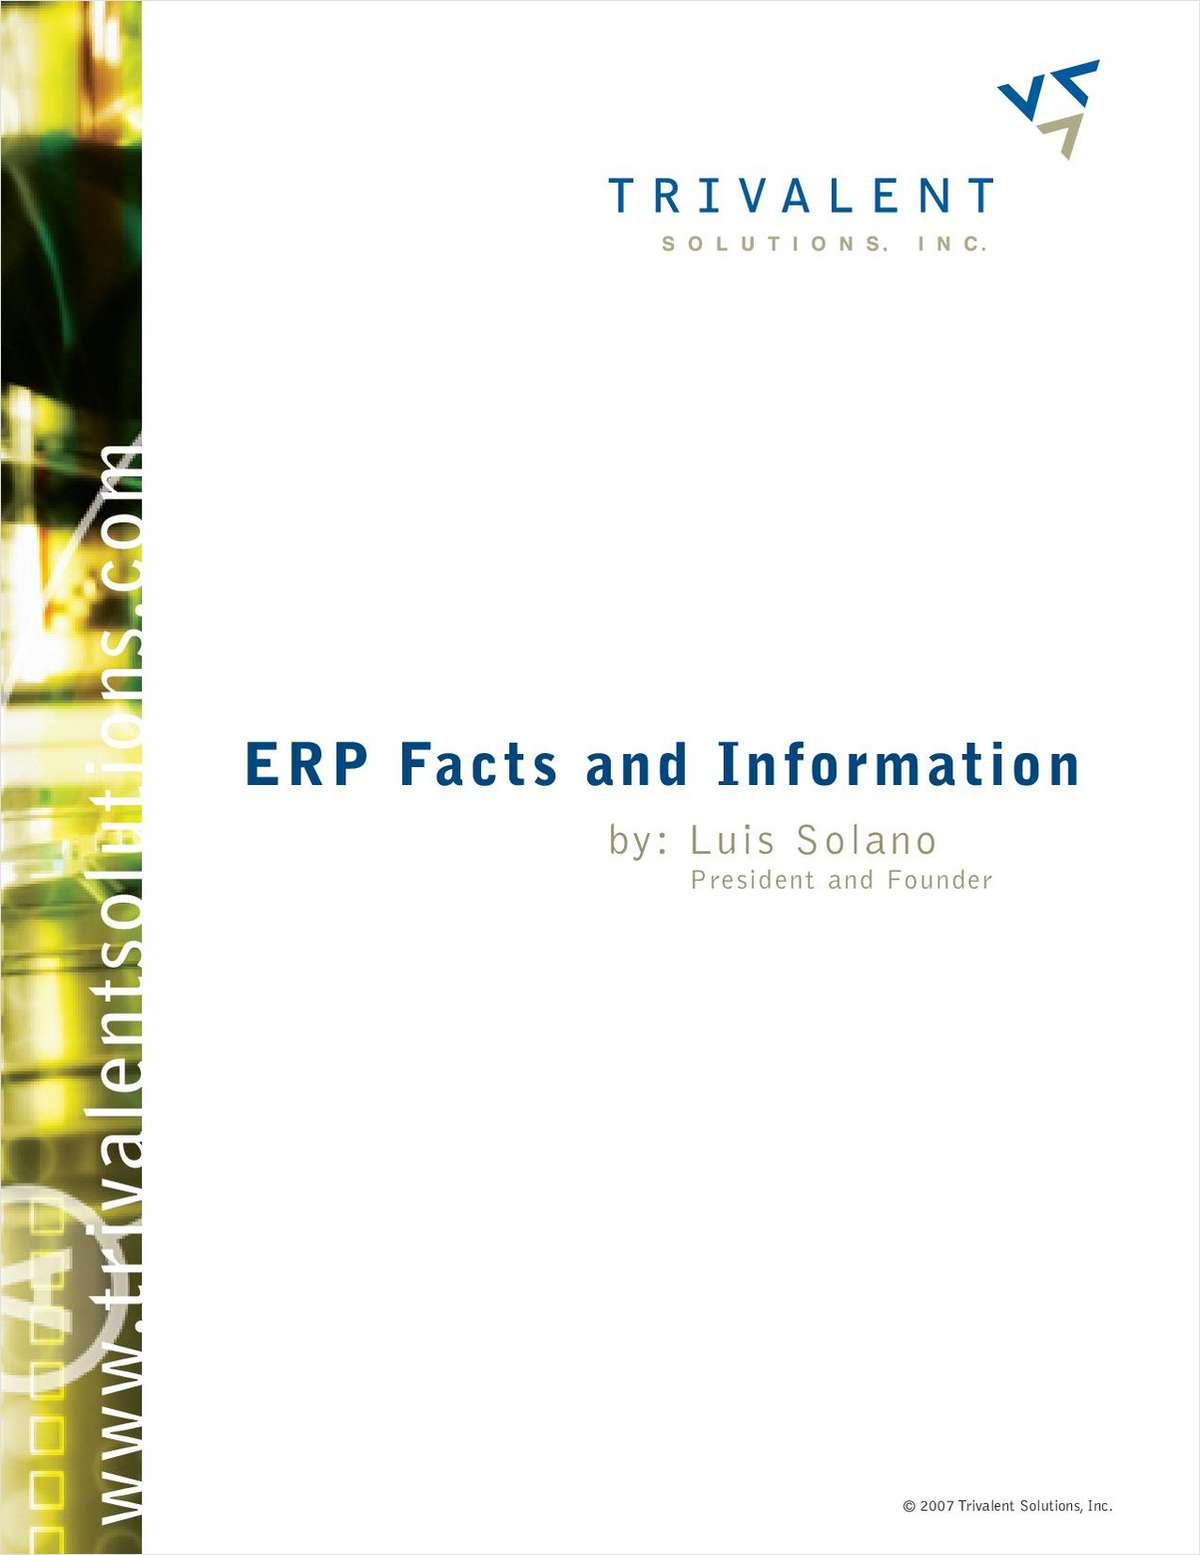 ERP Facts and Information